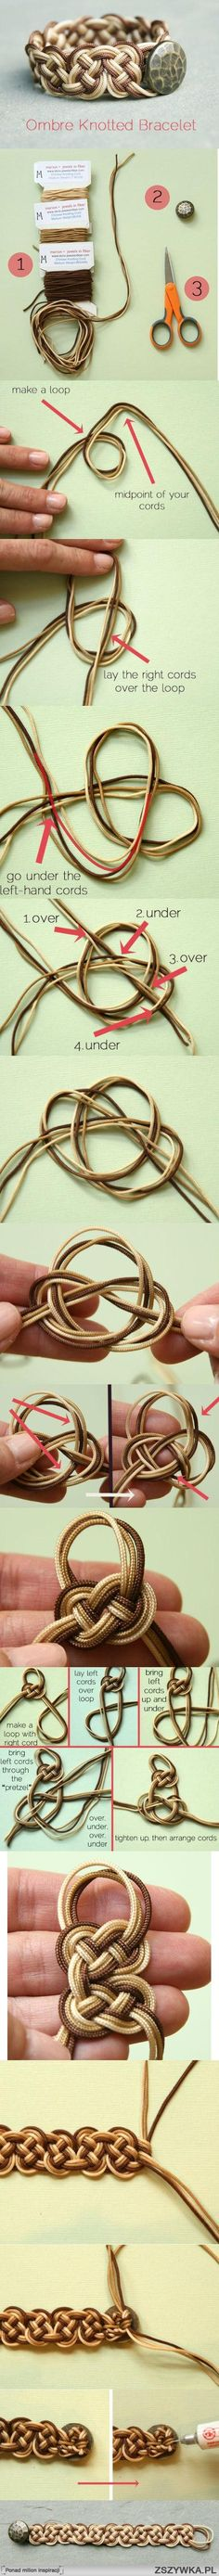 Ombre Knotted Bracelet (Celtic knot) Maybe I can figure it out from the pictures...